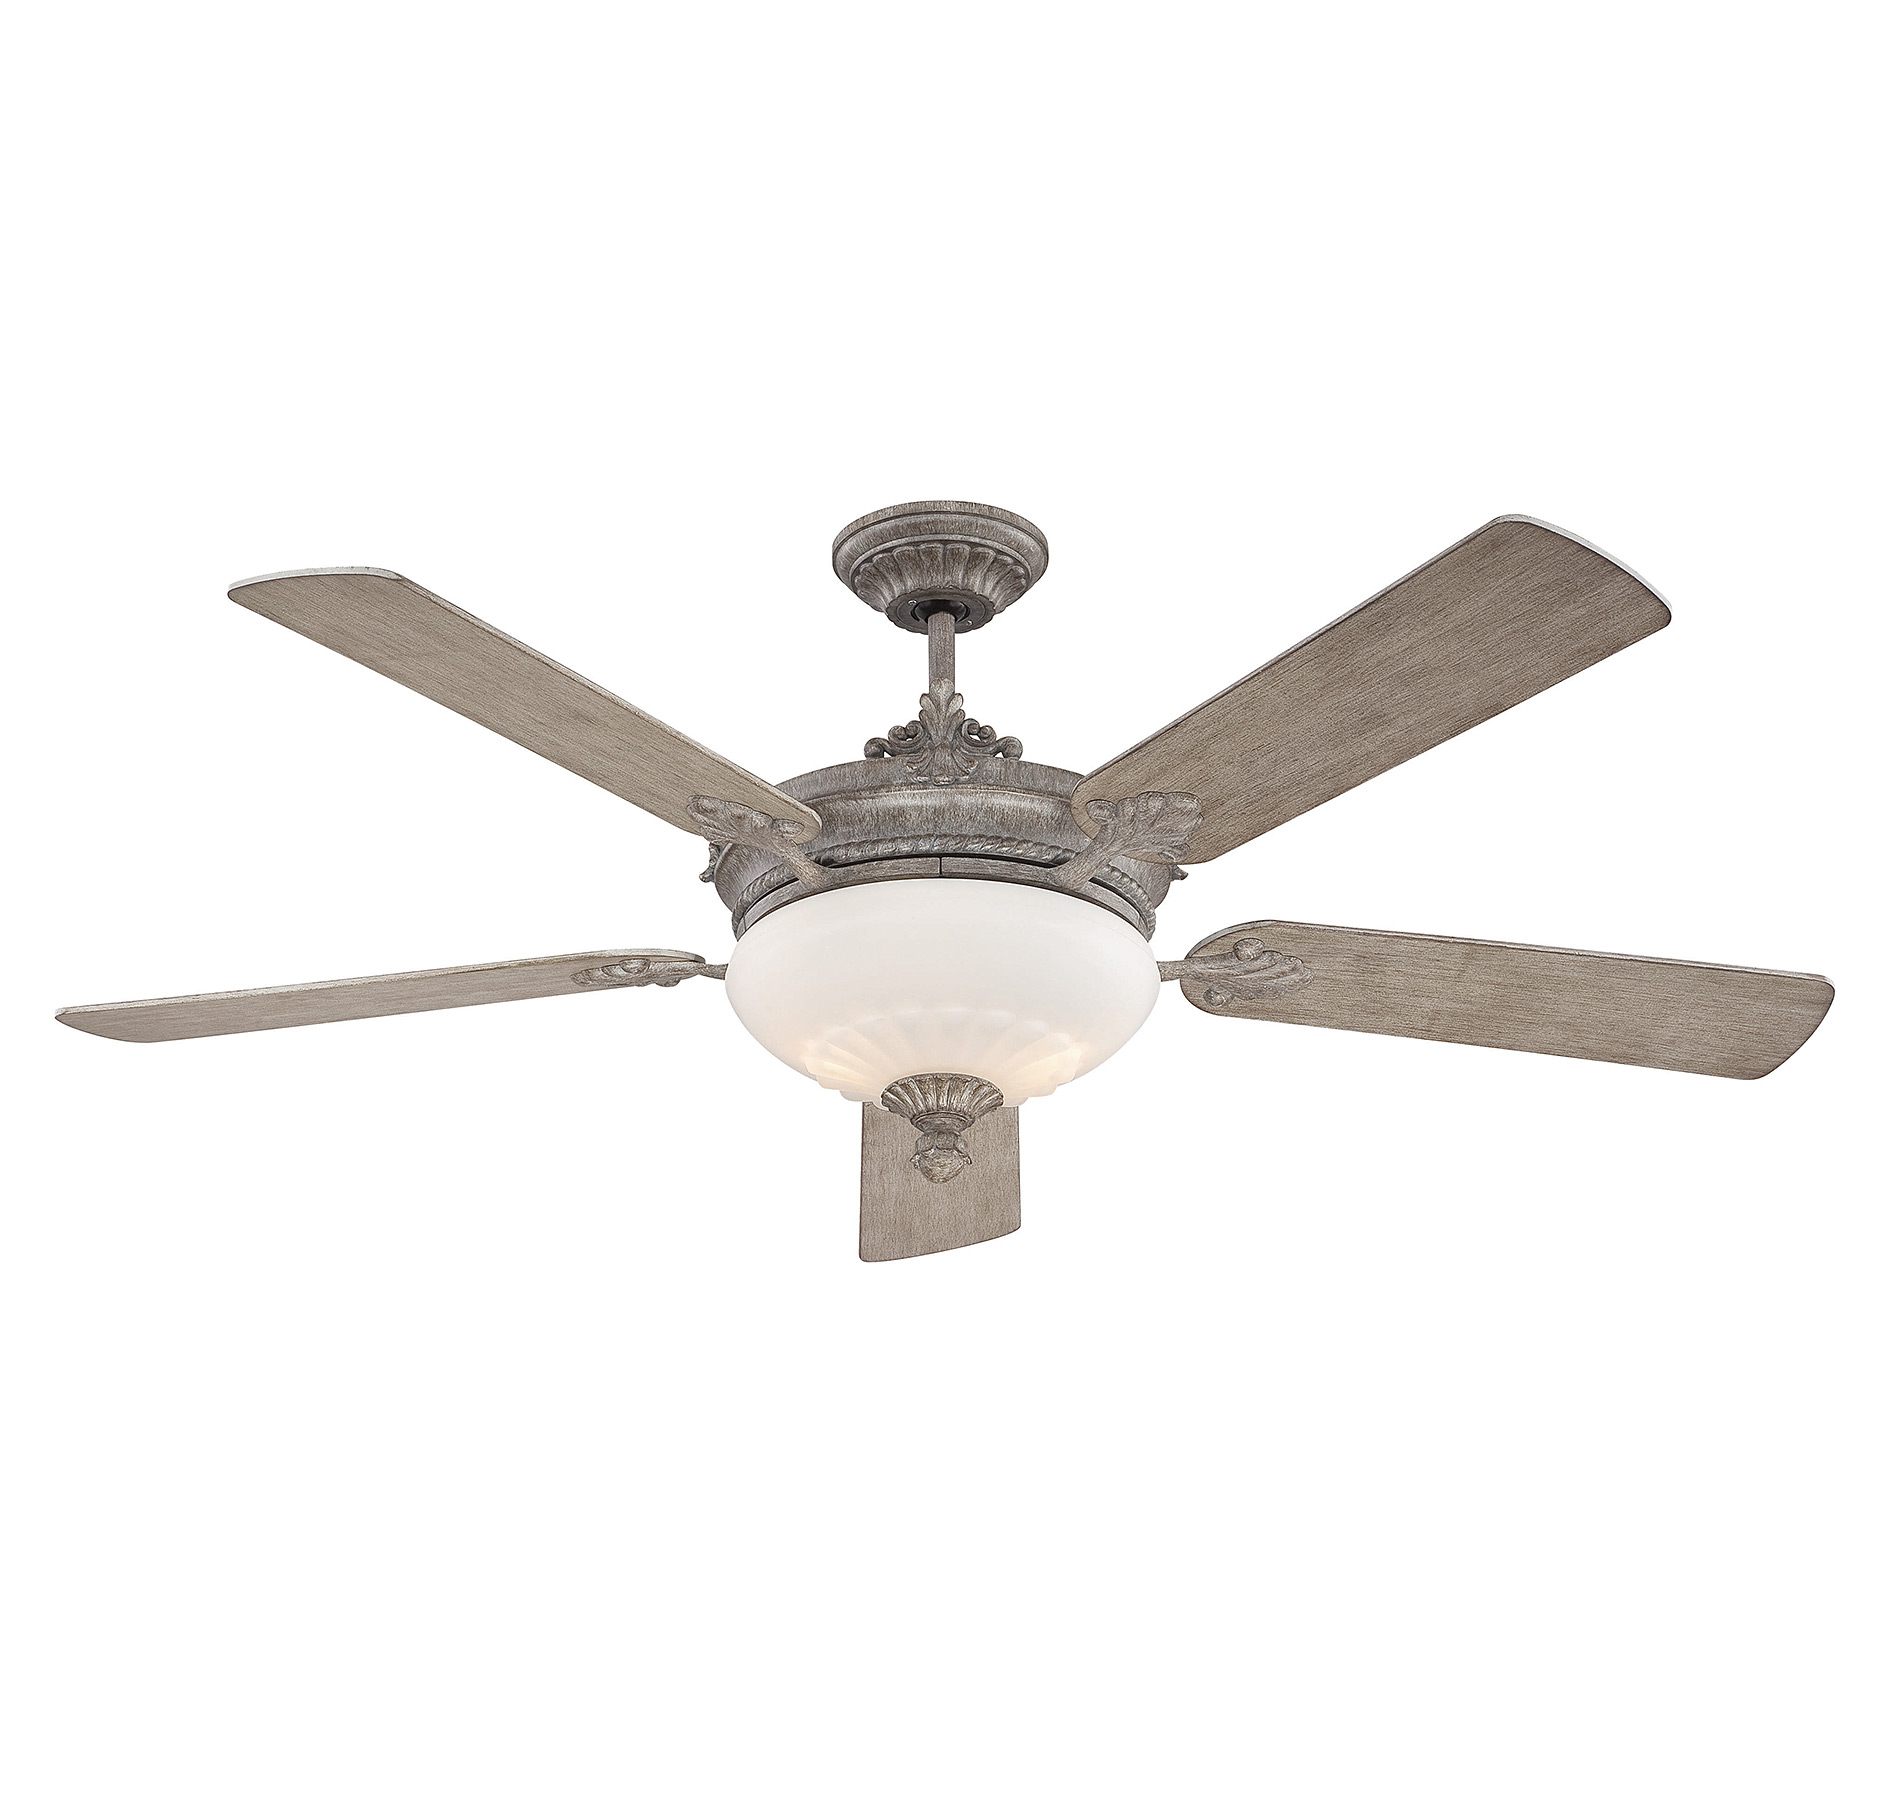 ceiling improvement amazon fans fan odyn nickel led inch home dp brushed large com fanimation